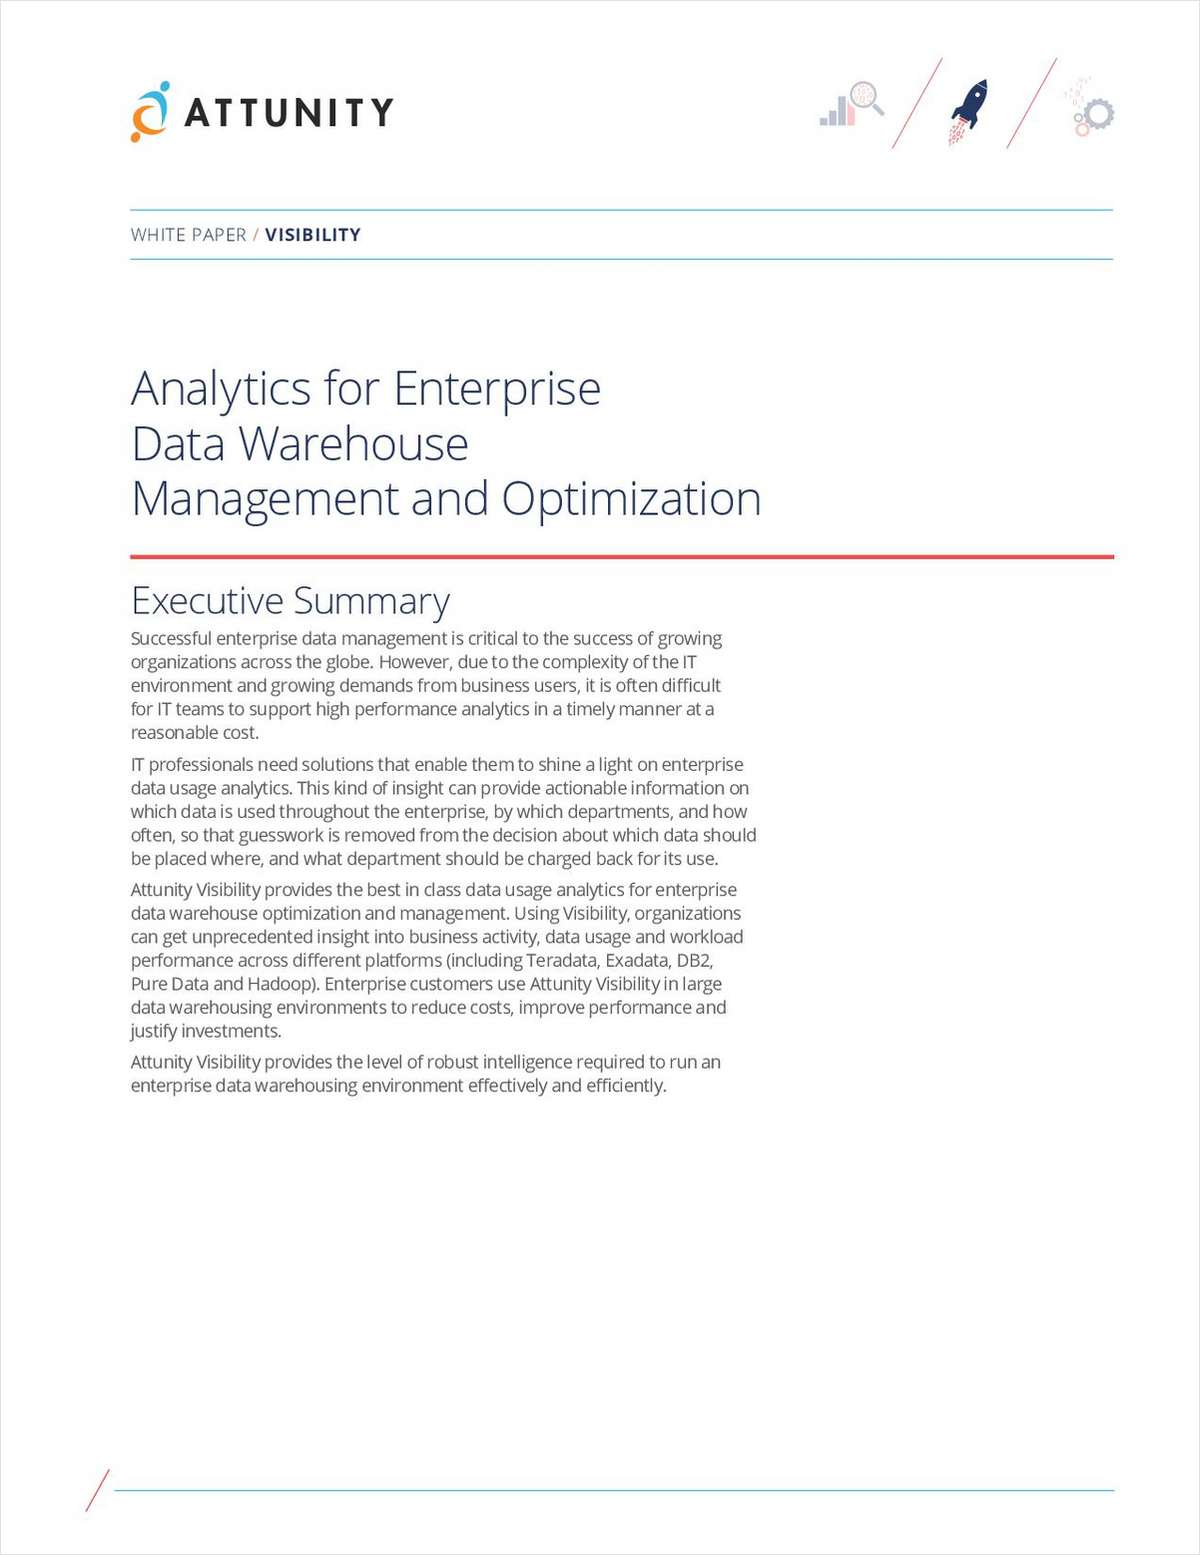 Analytics for Enterprise Data Warehouse Management and Optimization